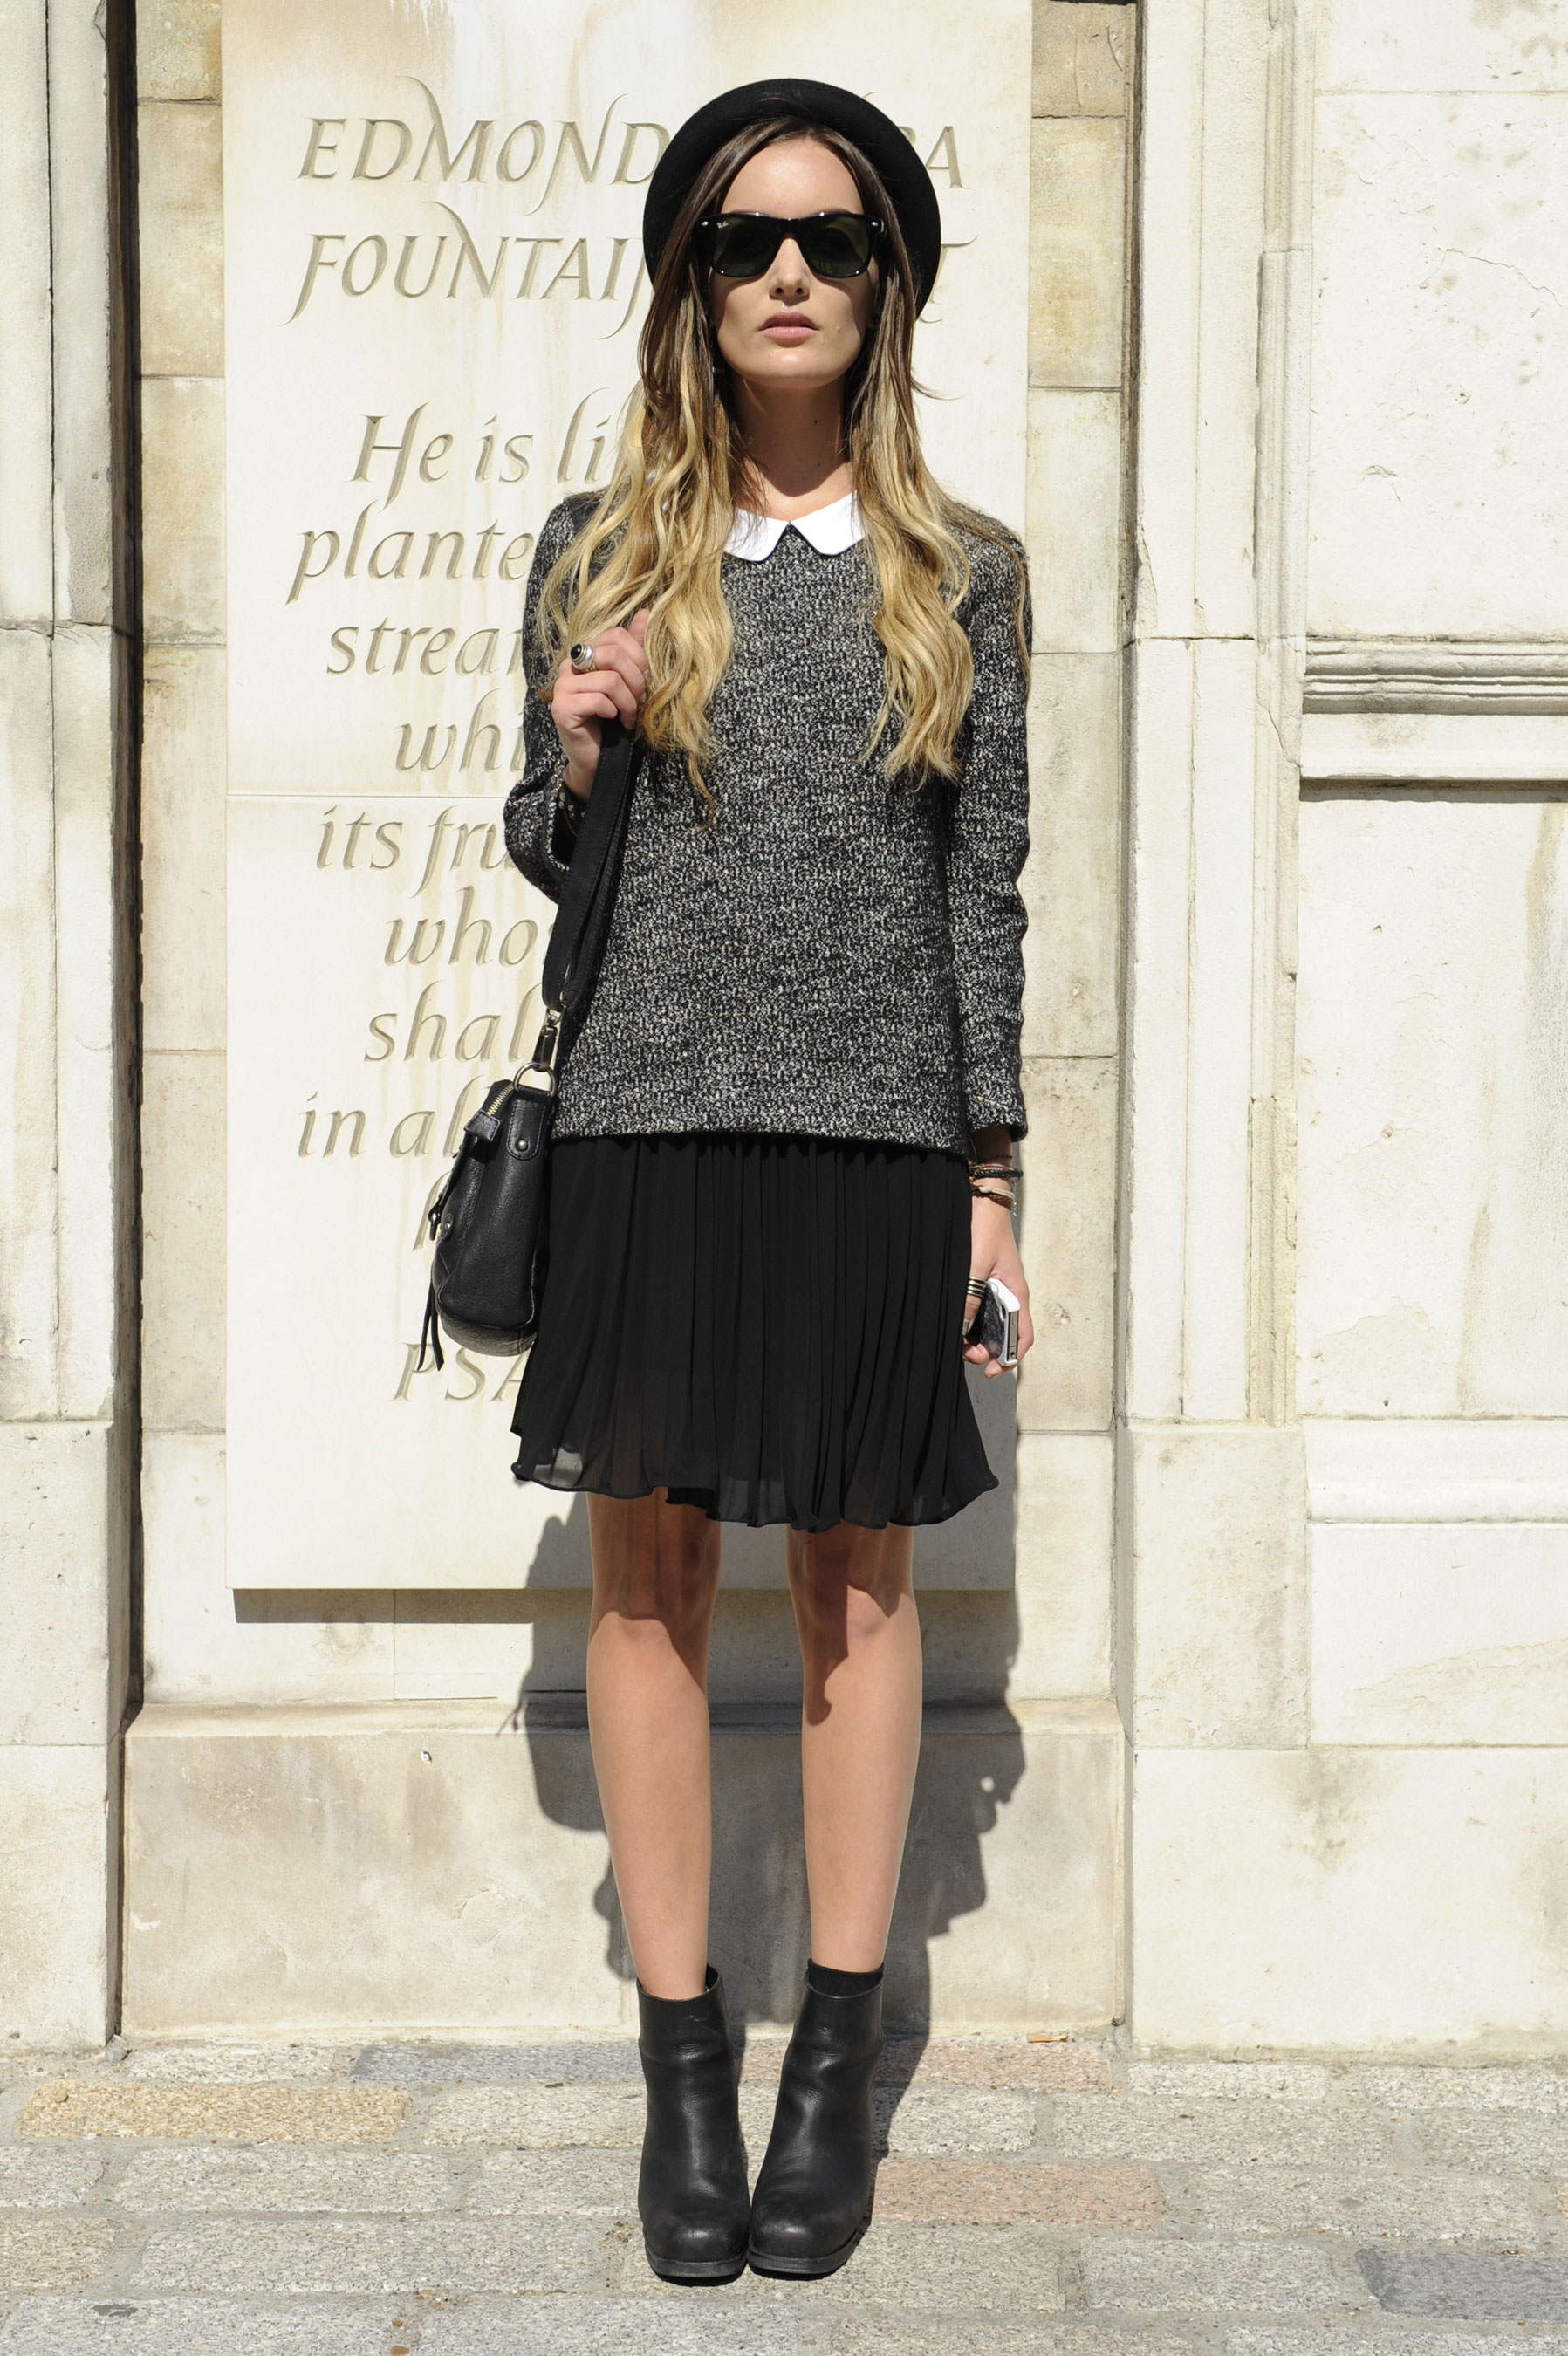 A classic Peter Pan collar set looks just a bit edgier when slick sunglasses and rocker-chic ankle boots are involved.